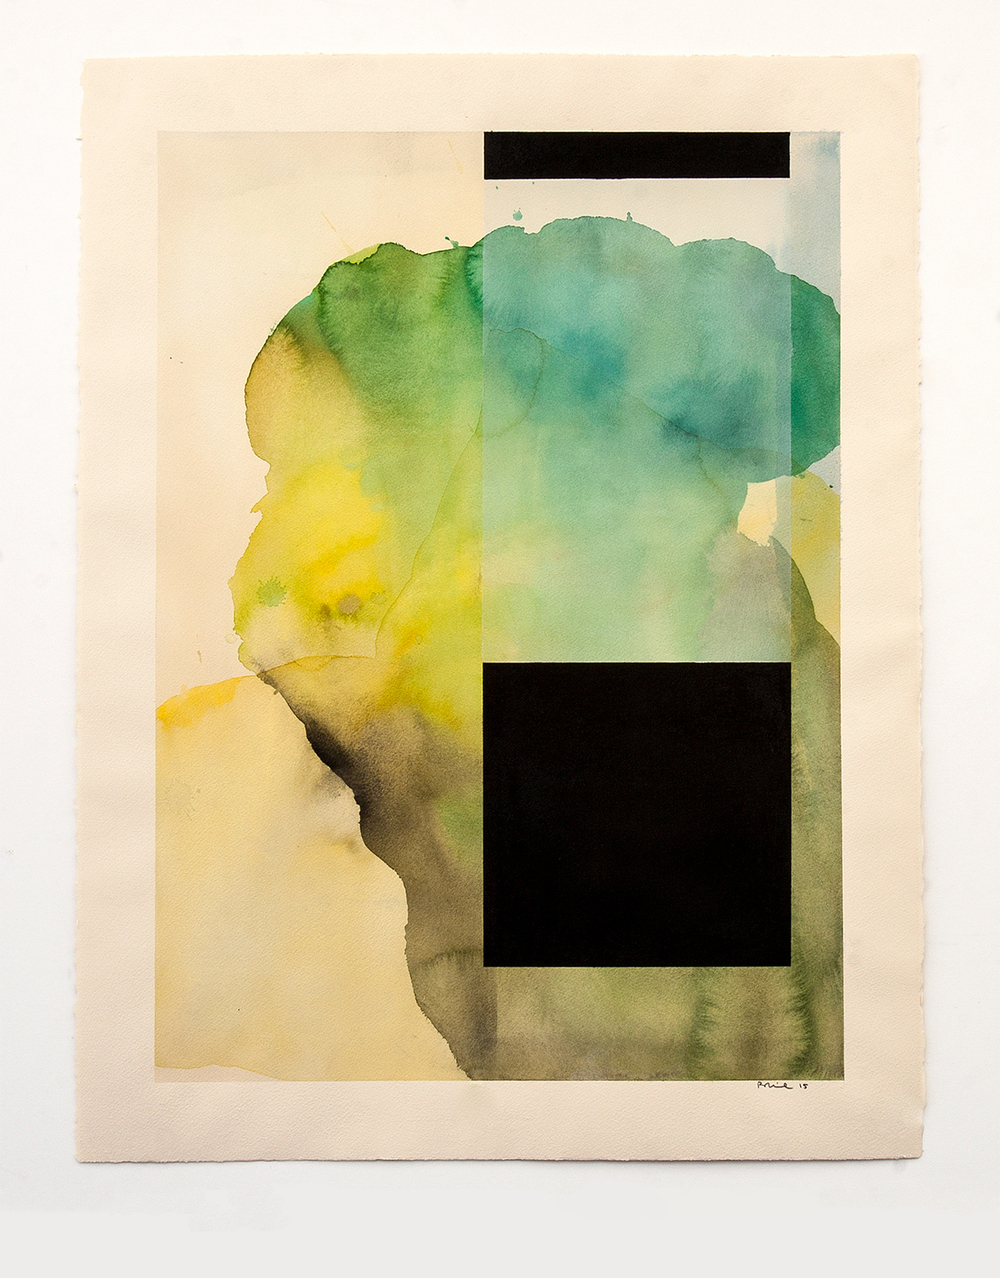 DANIEL BRICE, Untitled, 2015, watercolor, charcoal on paper, 22 x 30 inches